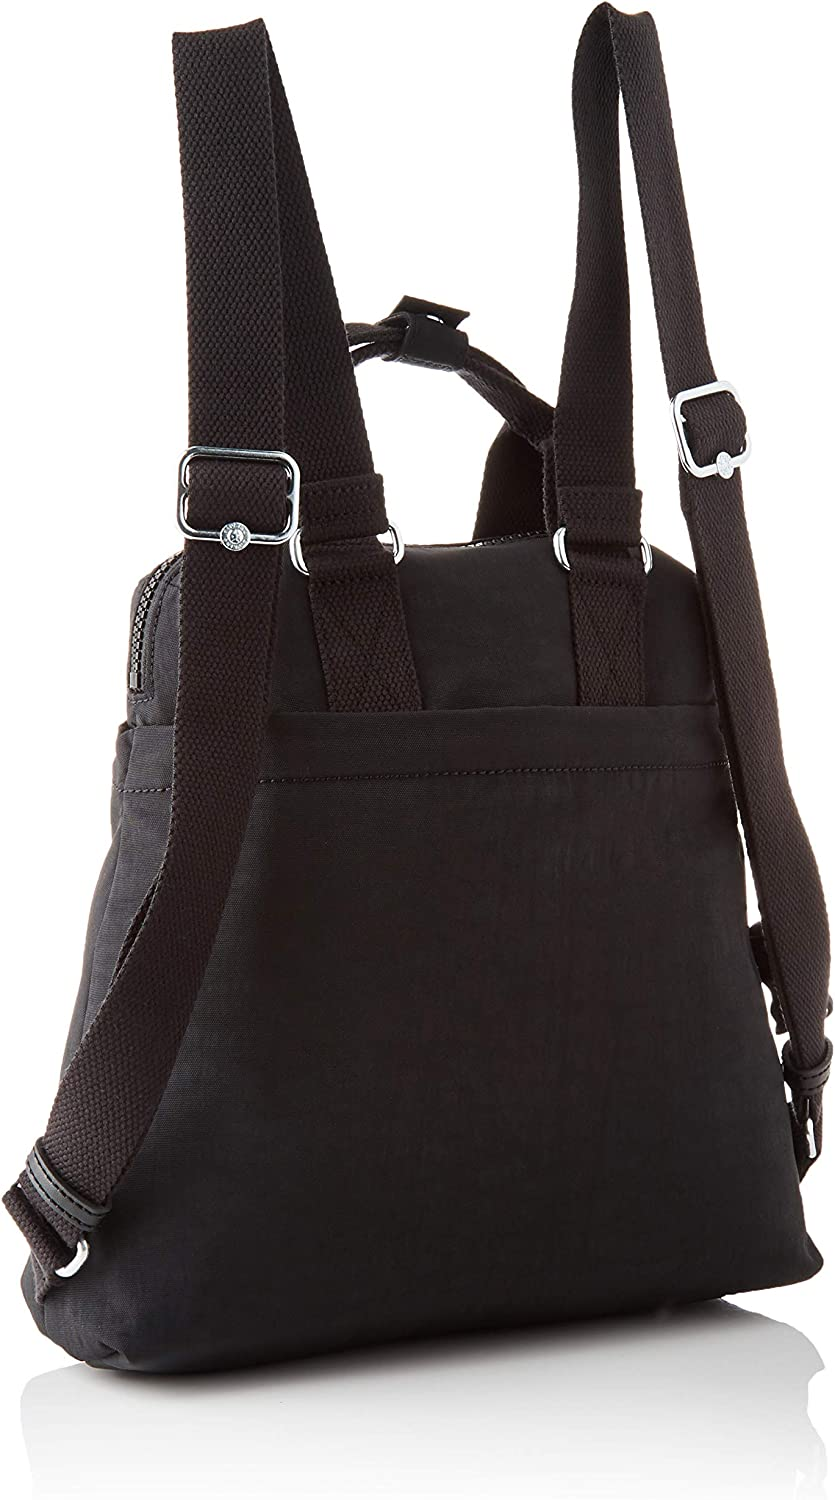 LxWxH 11x27x27.5 cm Backpacks para Mujer Kipling Goyo Mini